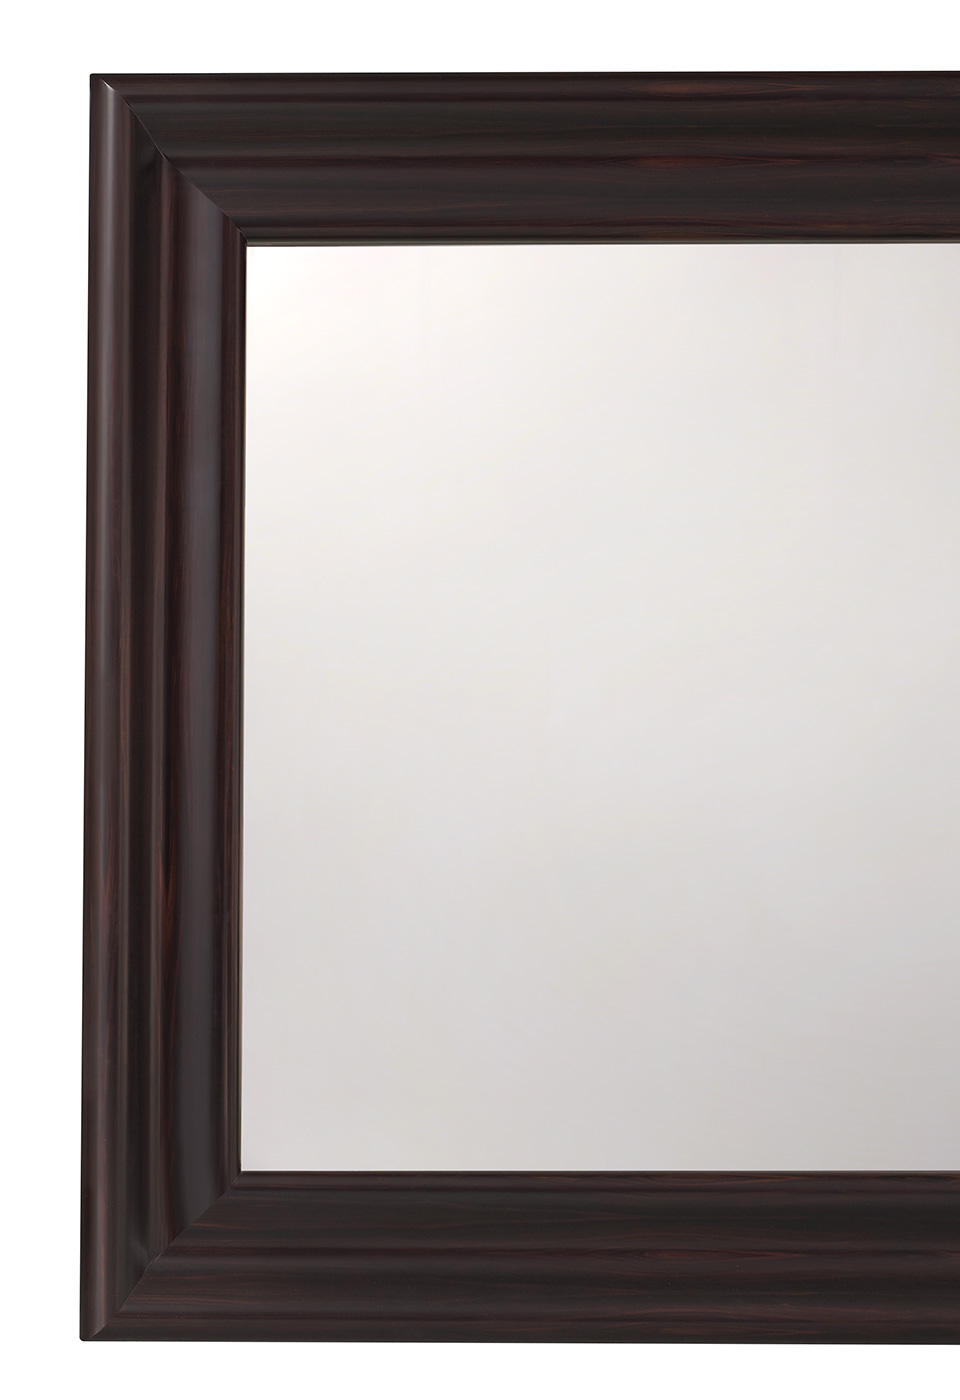 Michele is a large mirror with a wooden frame from the Promemoria's catalogue | Promemoria